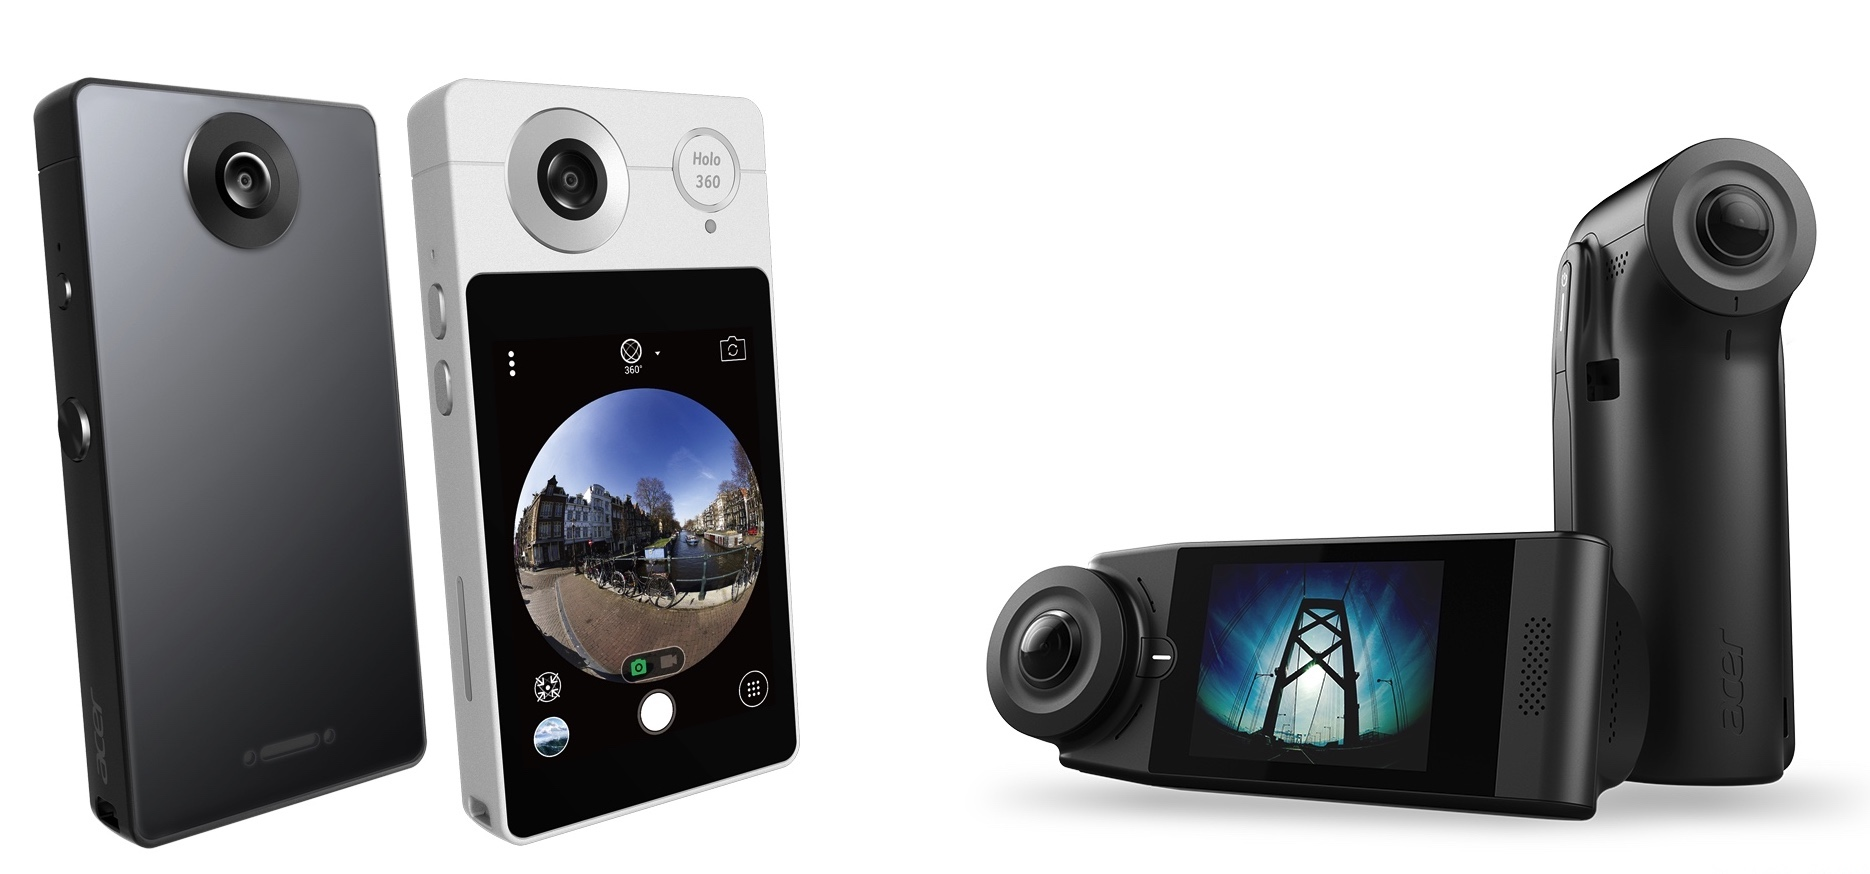 Acer Holo360 Vision360